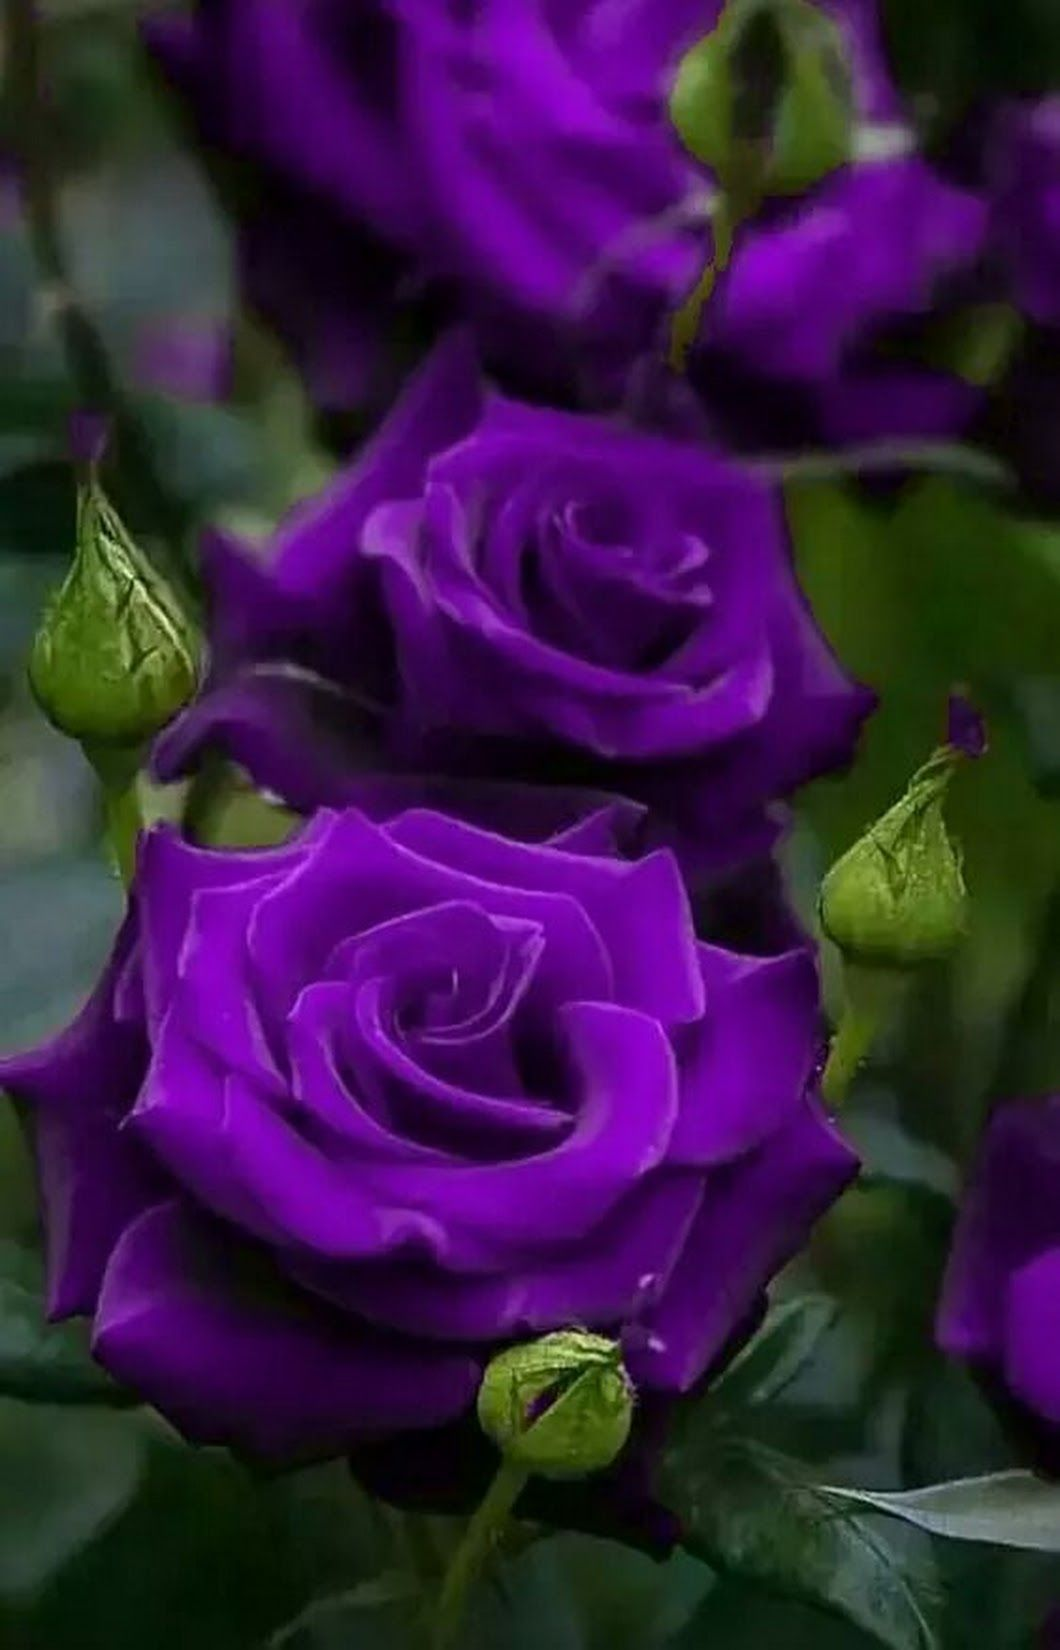 Growing Healthy Rose Bushes With Images Purple Roses Purple